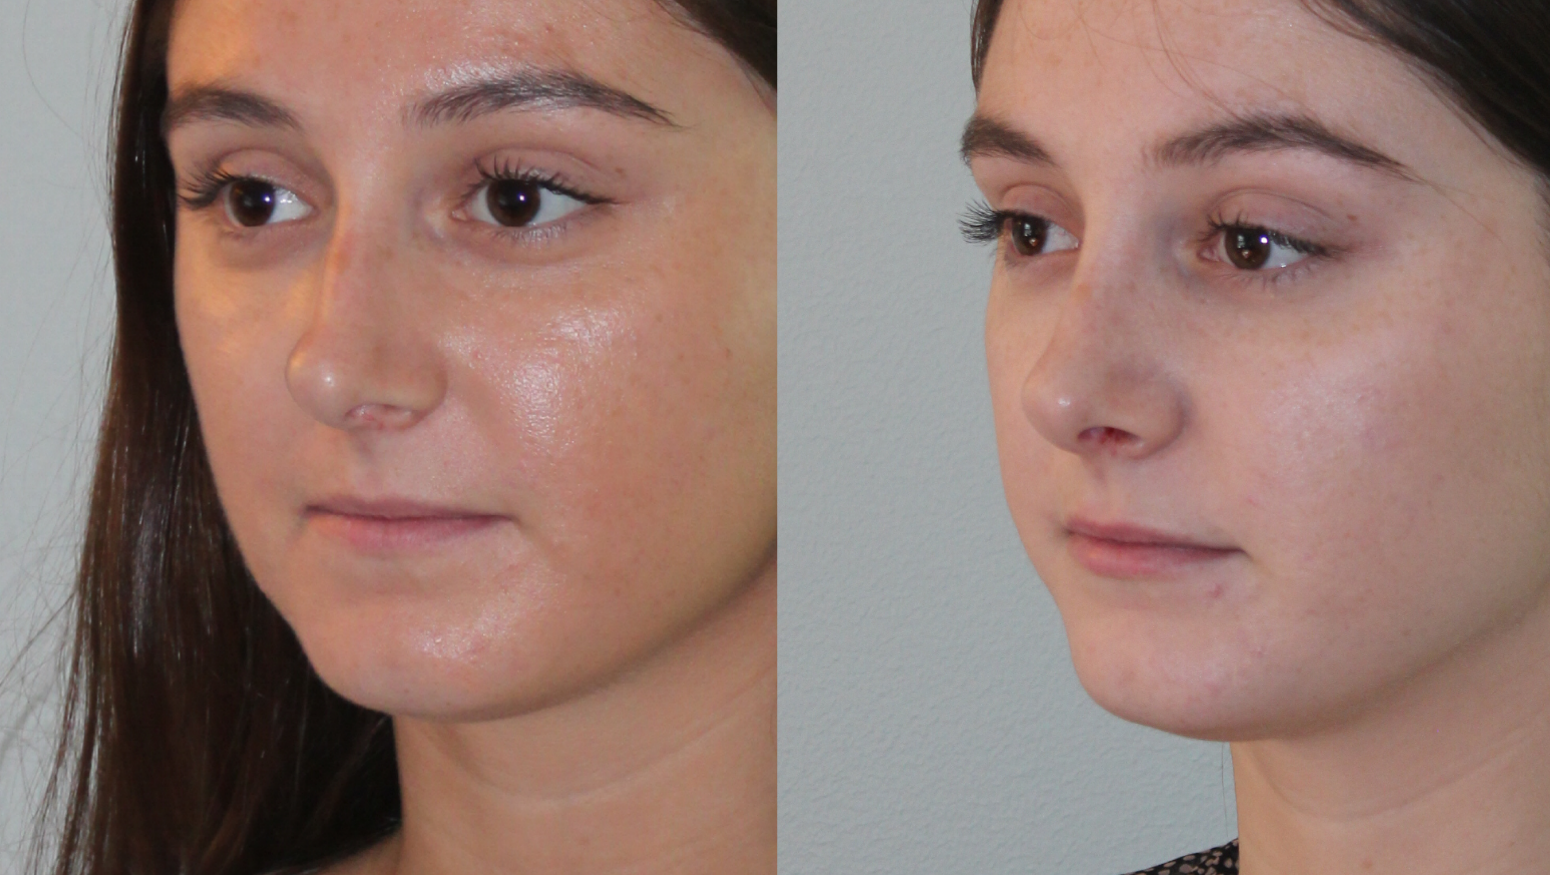 Drastic reduction in the tip of the nose after surgery to repair a broken nose.